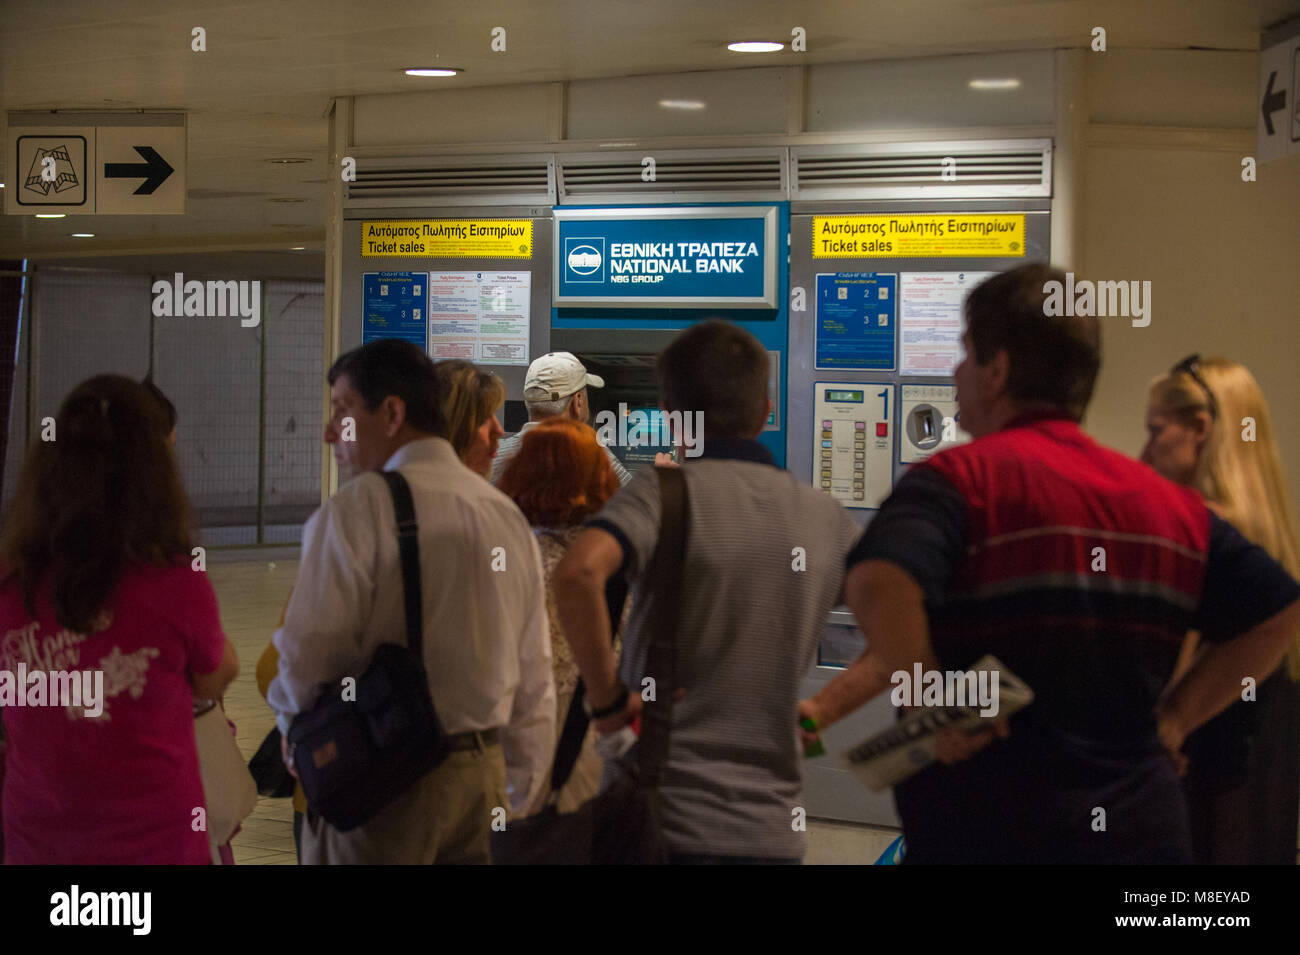 Athens. Greek people line up to withdraw mooney in a National Bank cash dispenser, Omonia tube station. Greece. - Stock Image